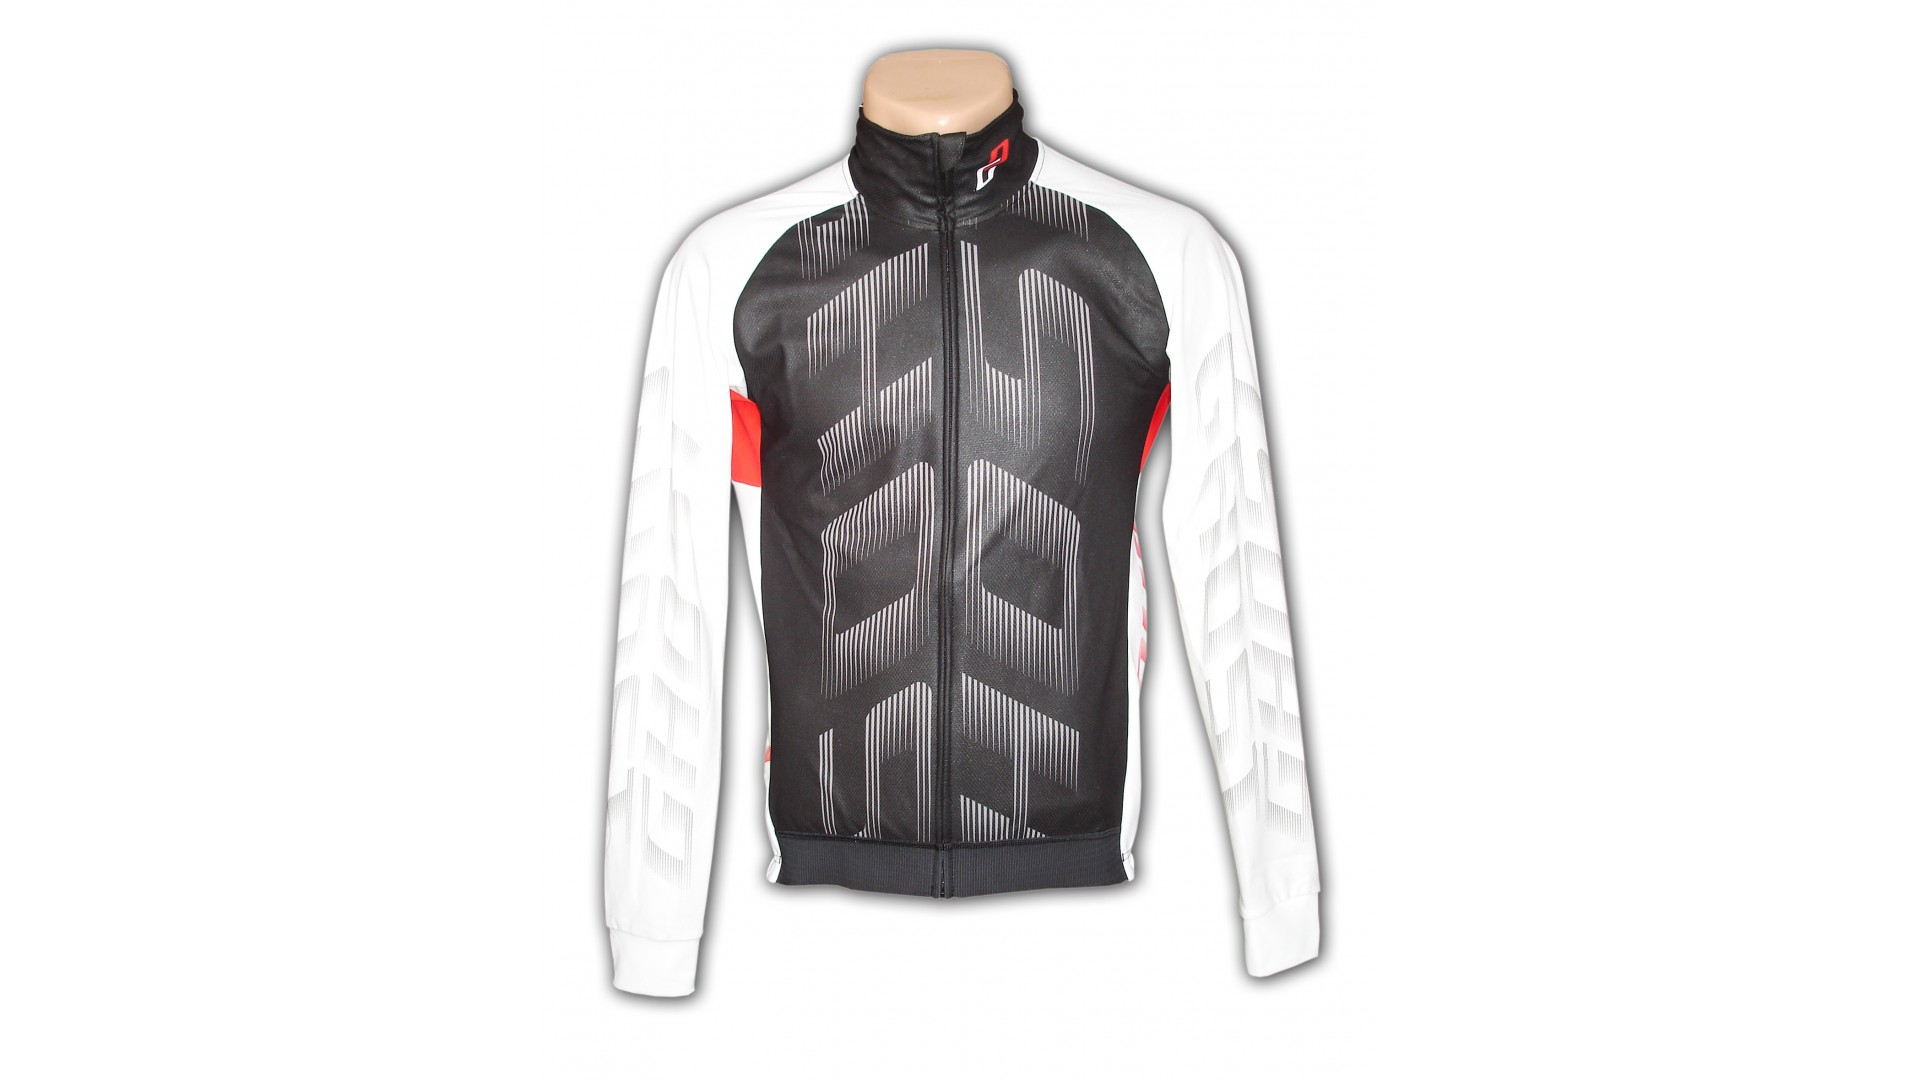 Велокуртка Ghost Pro Wind jacket зимняя год 2016